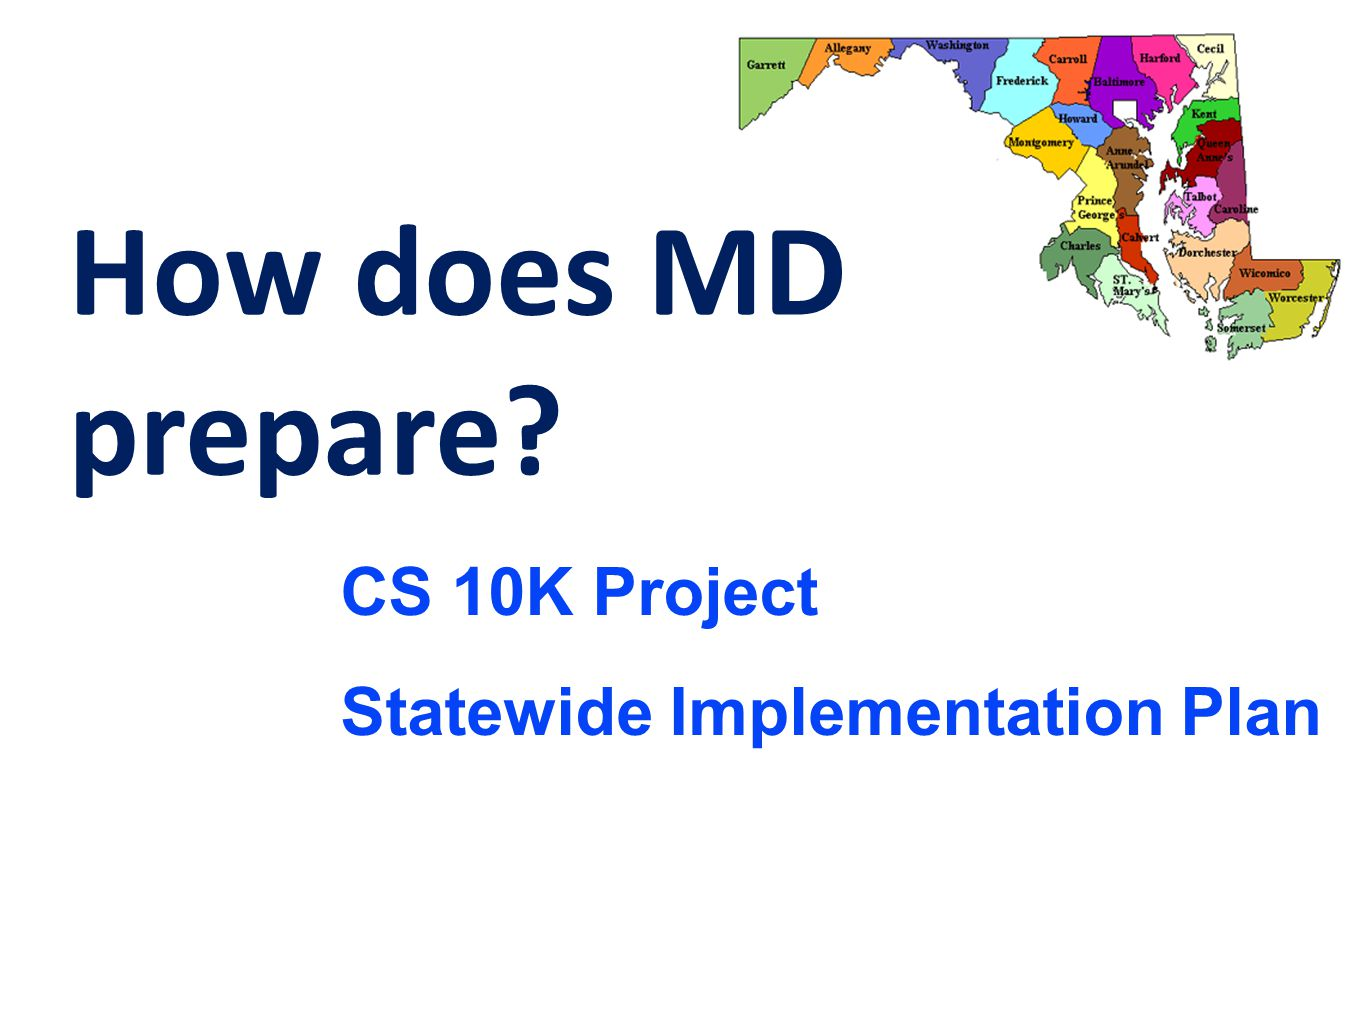 How does MD prepare? CS 10K Project Statewide Implementation Plan